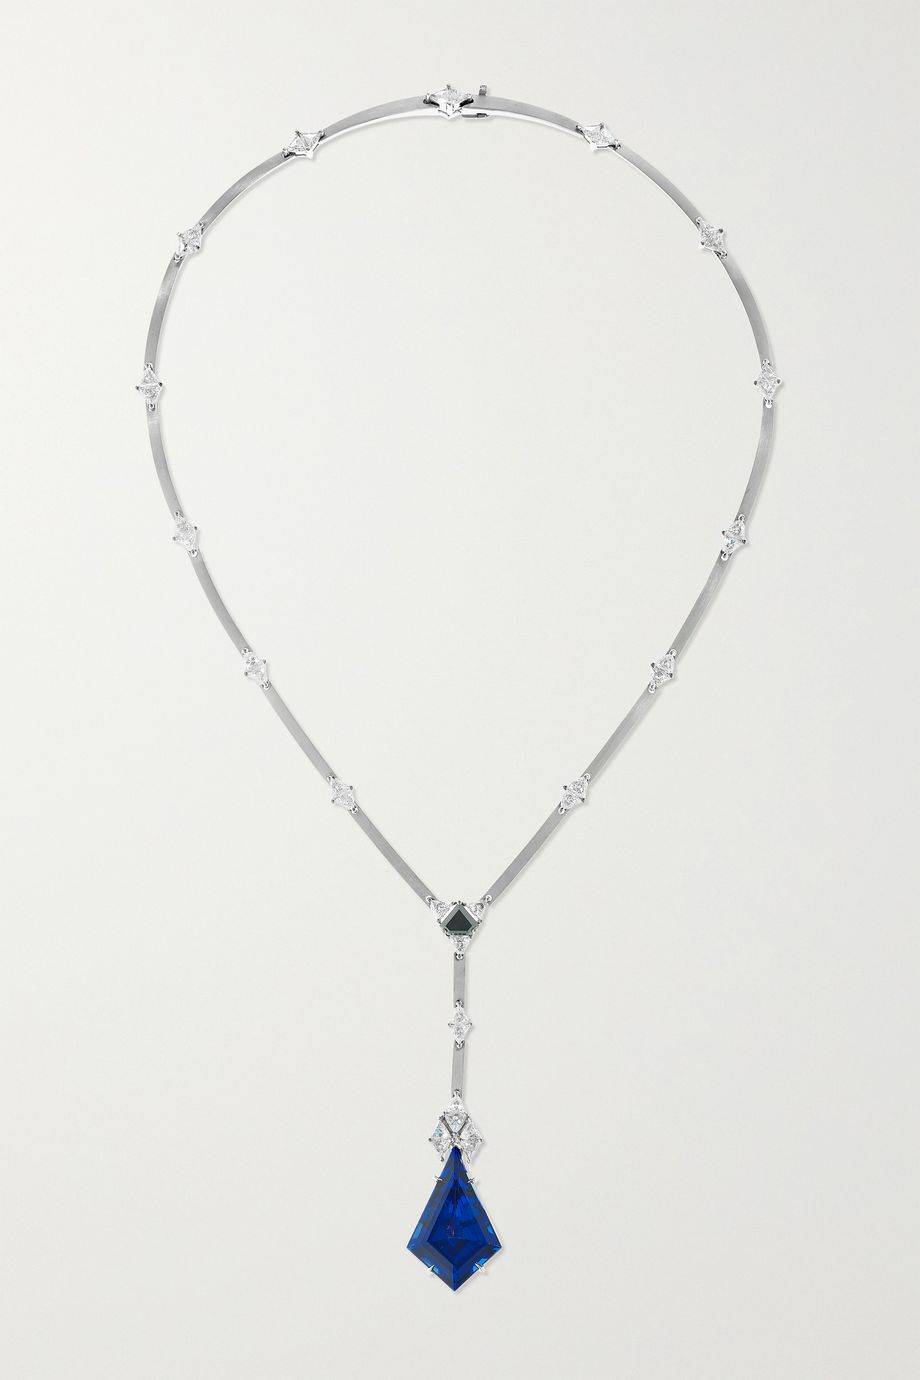 Ara Vartanian 18-karat white gold, tanzanite and diamond necklace